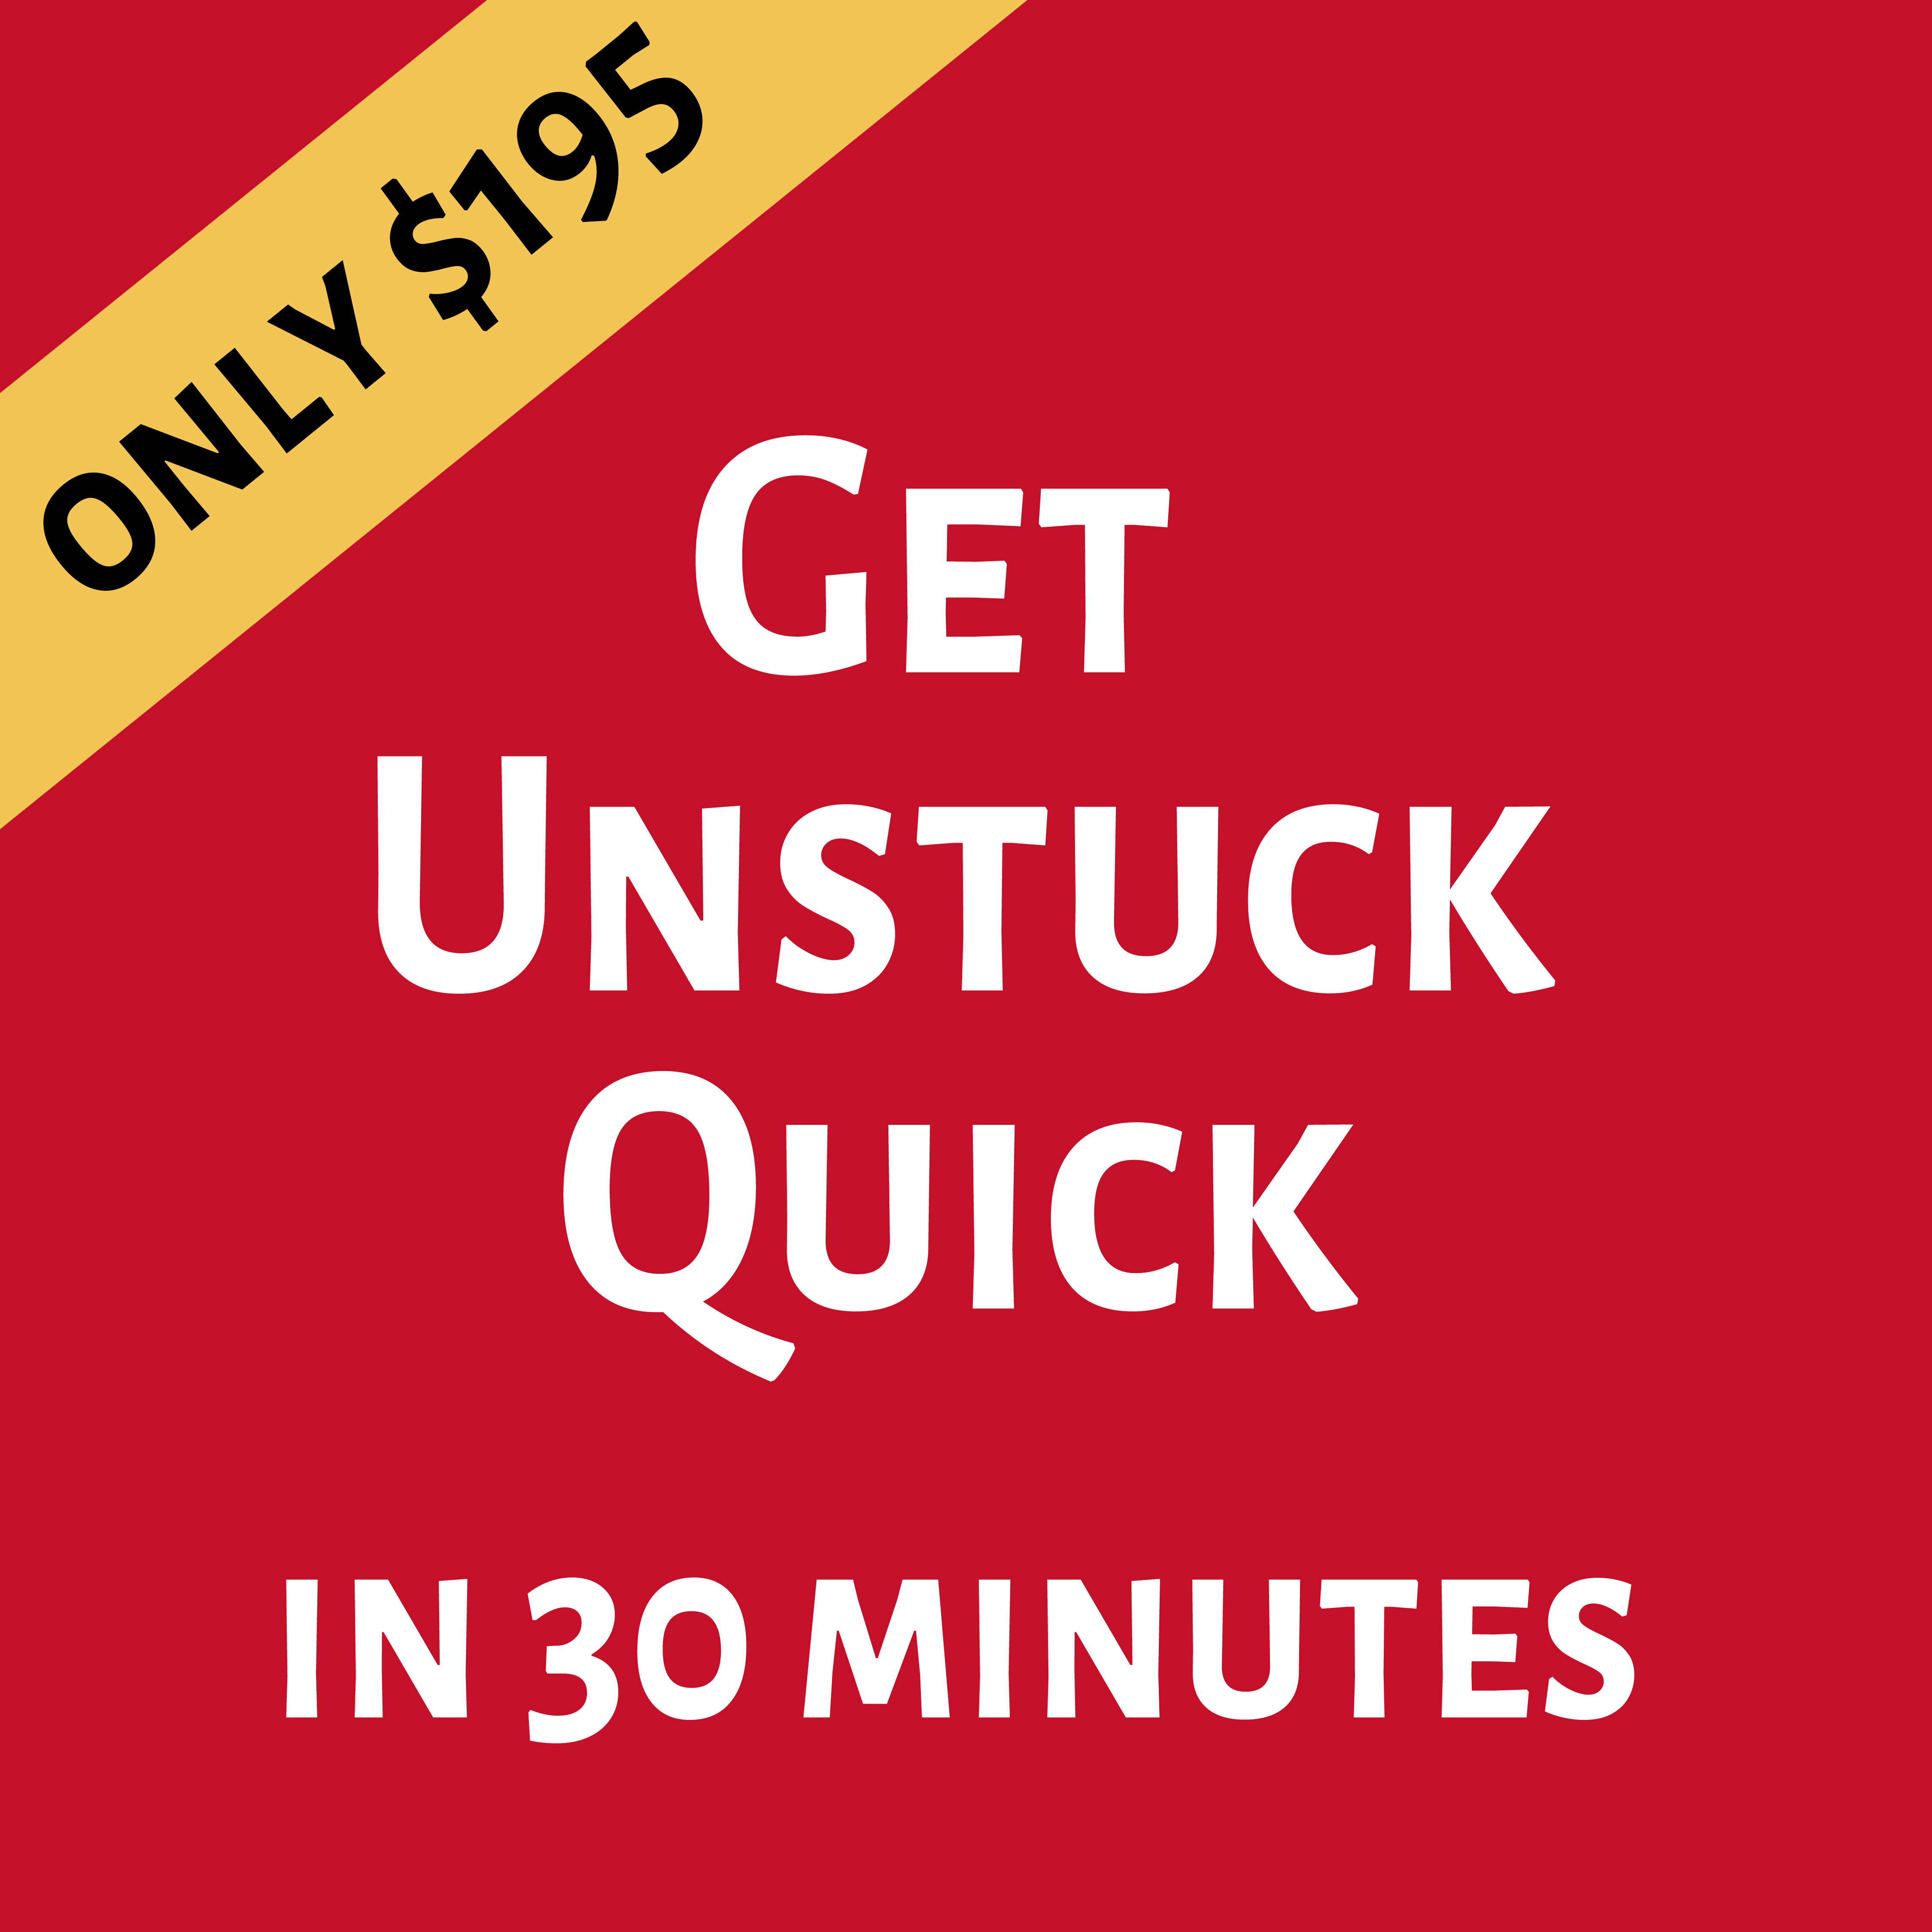 Unstuck Quick 30 Minutes - Buy Now